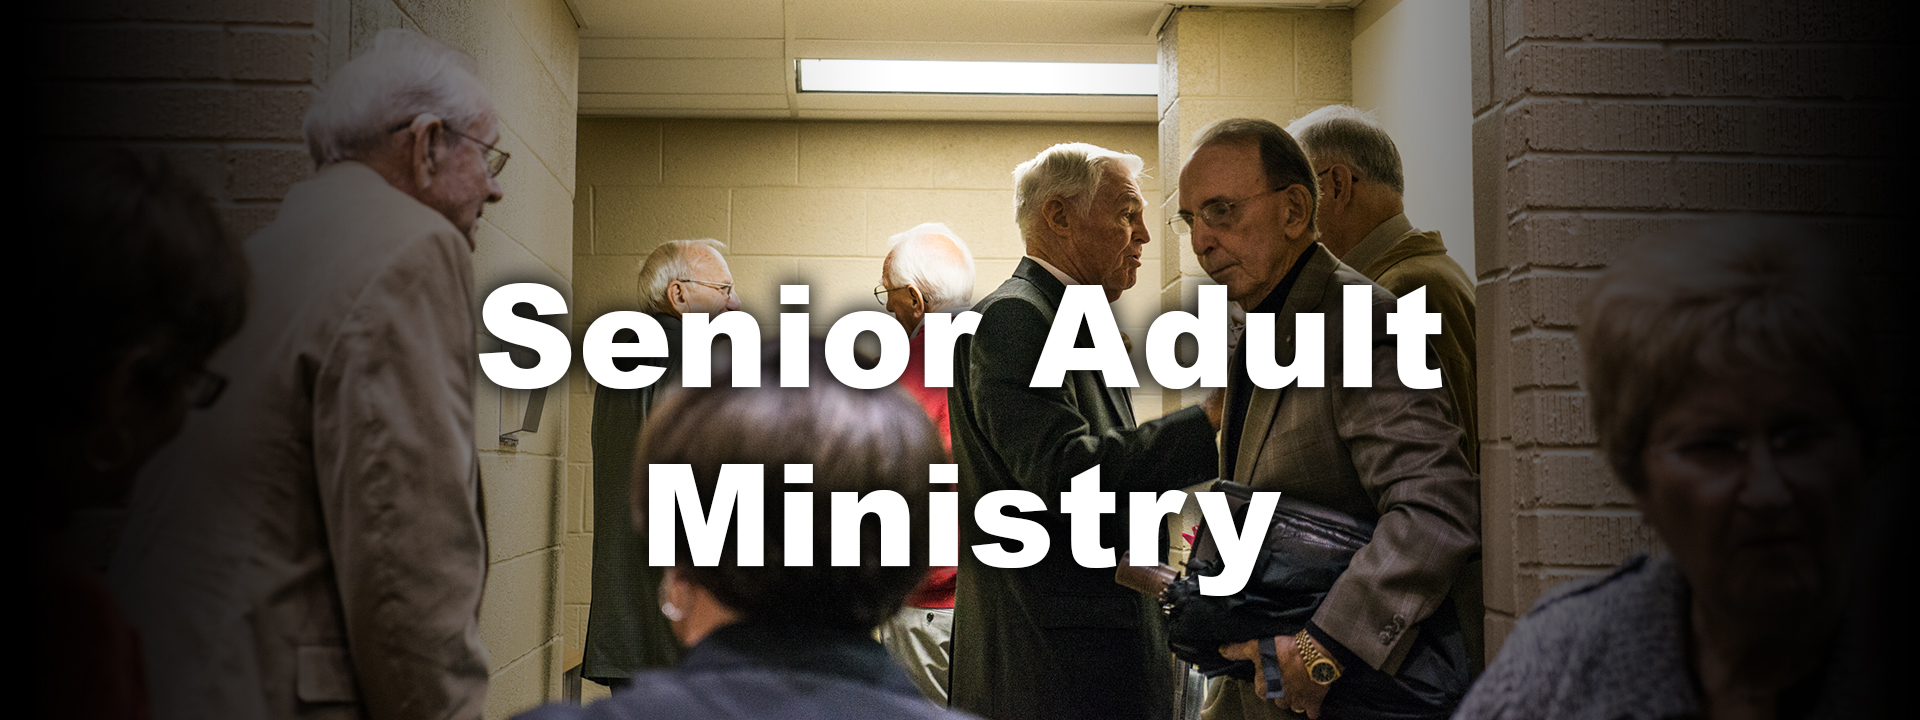 FBC Senior Adult Ministry